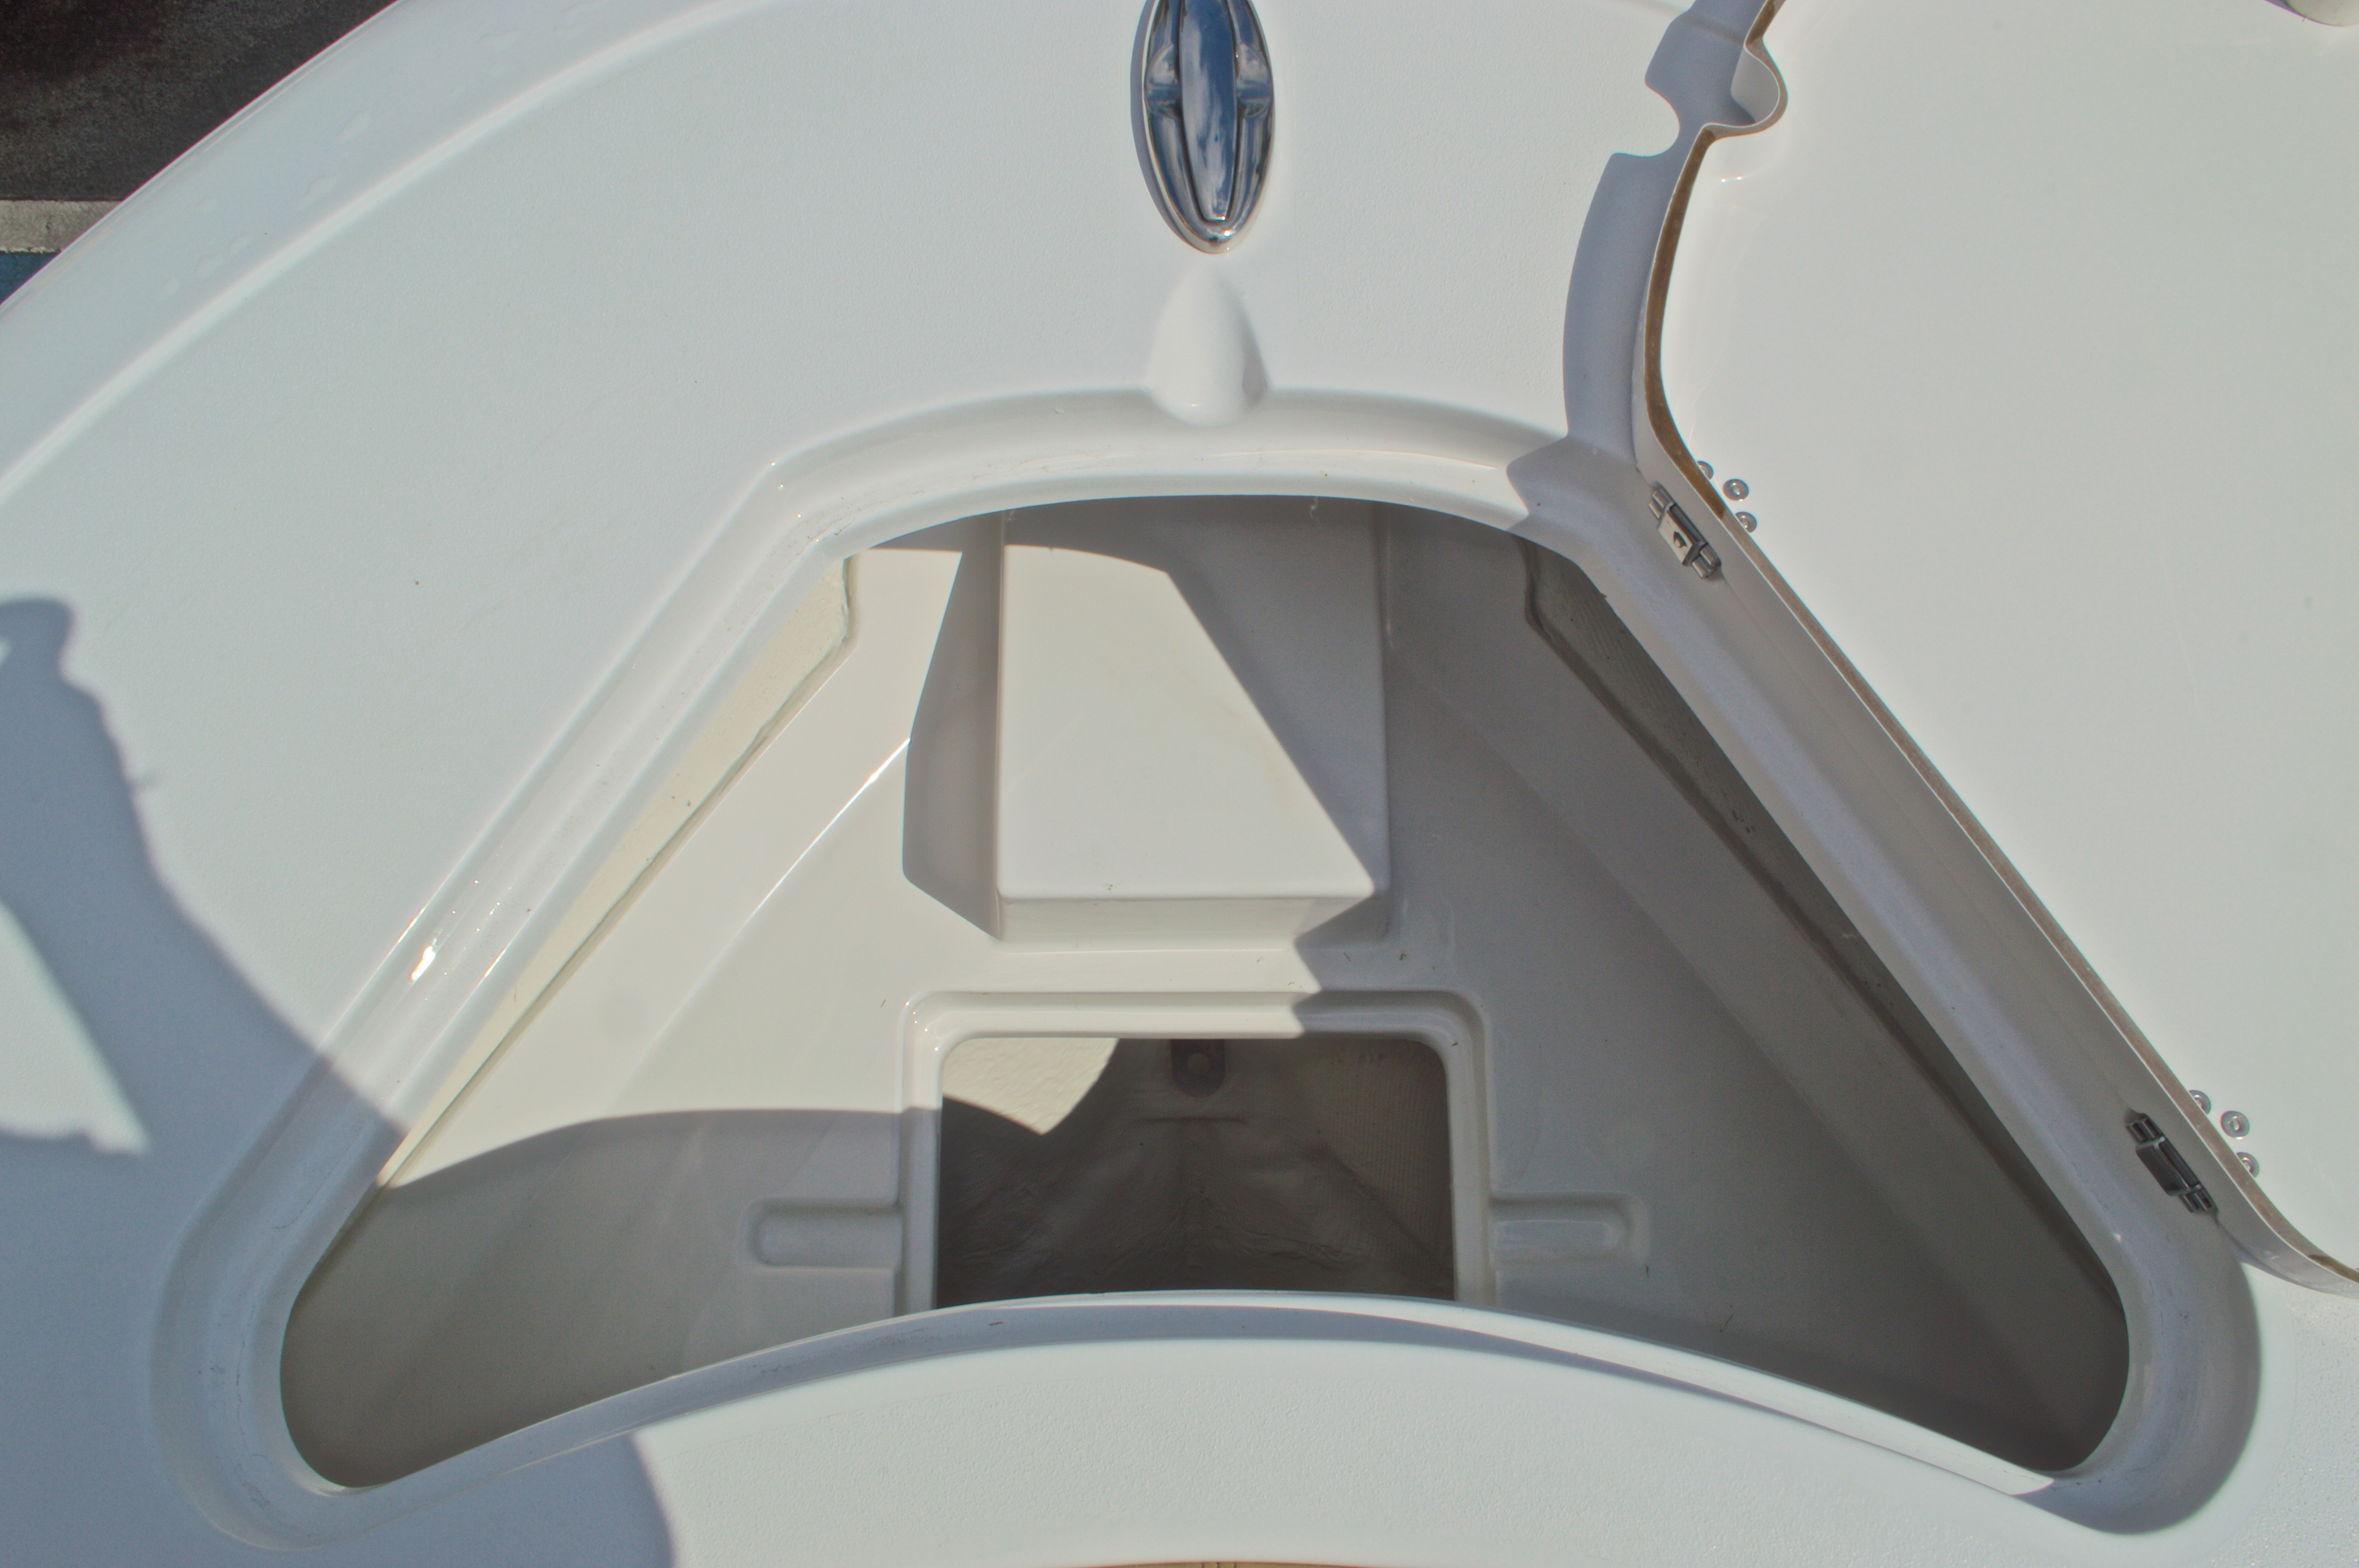 Thumbnail 44 for New 2016 Sportsman Heritage 231 Center Console boat for sale in Vero Beach, FL